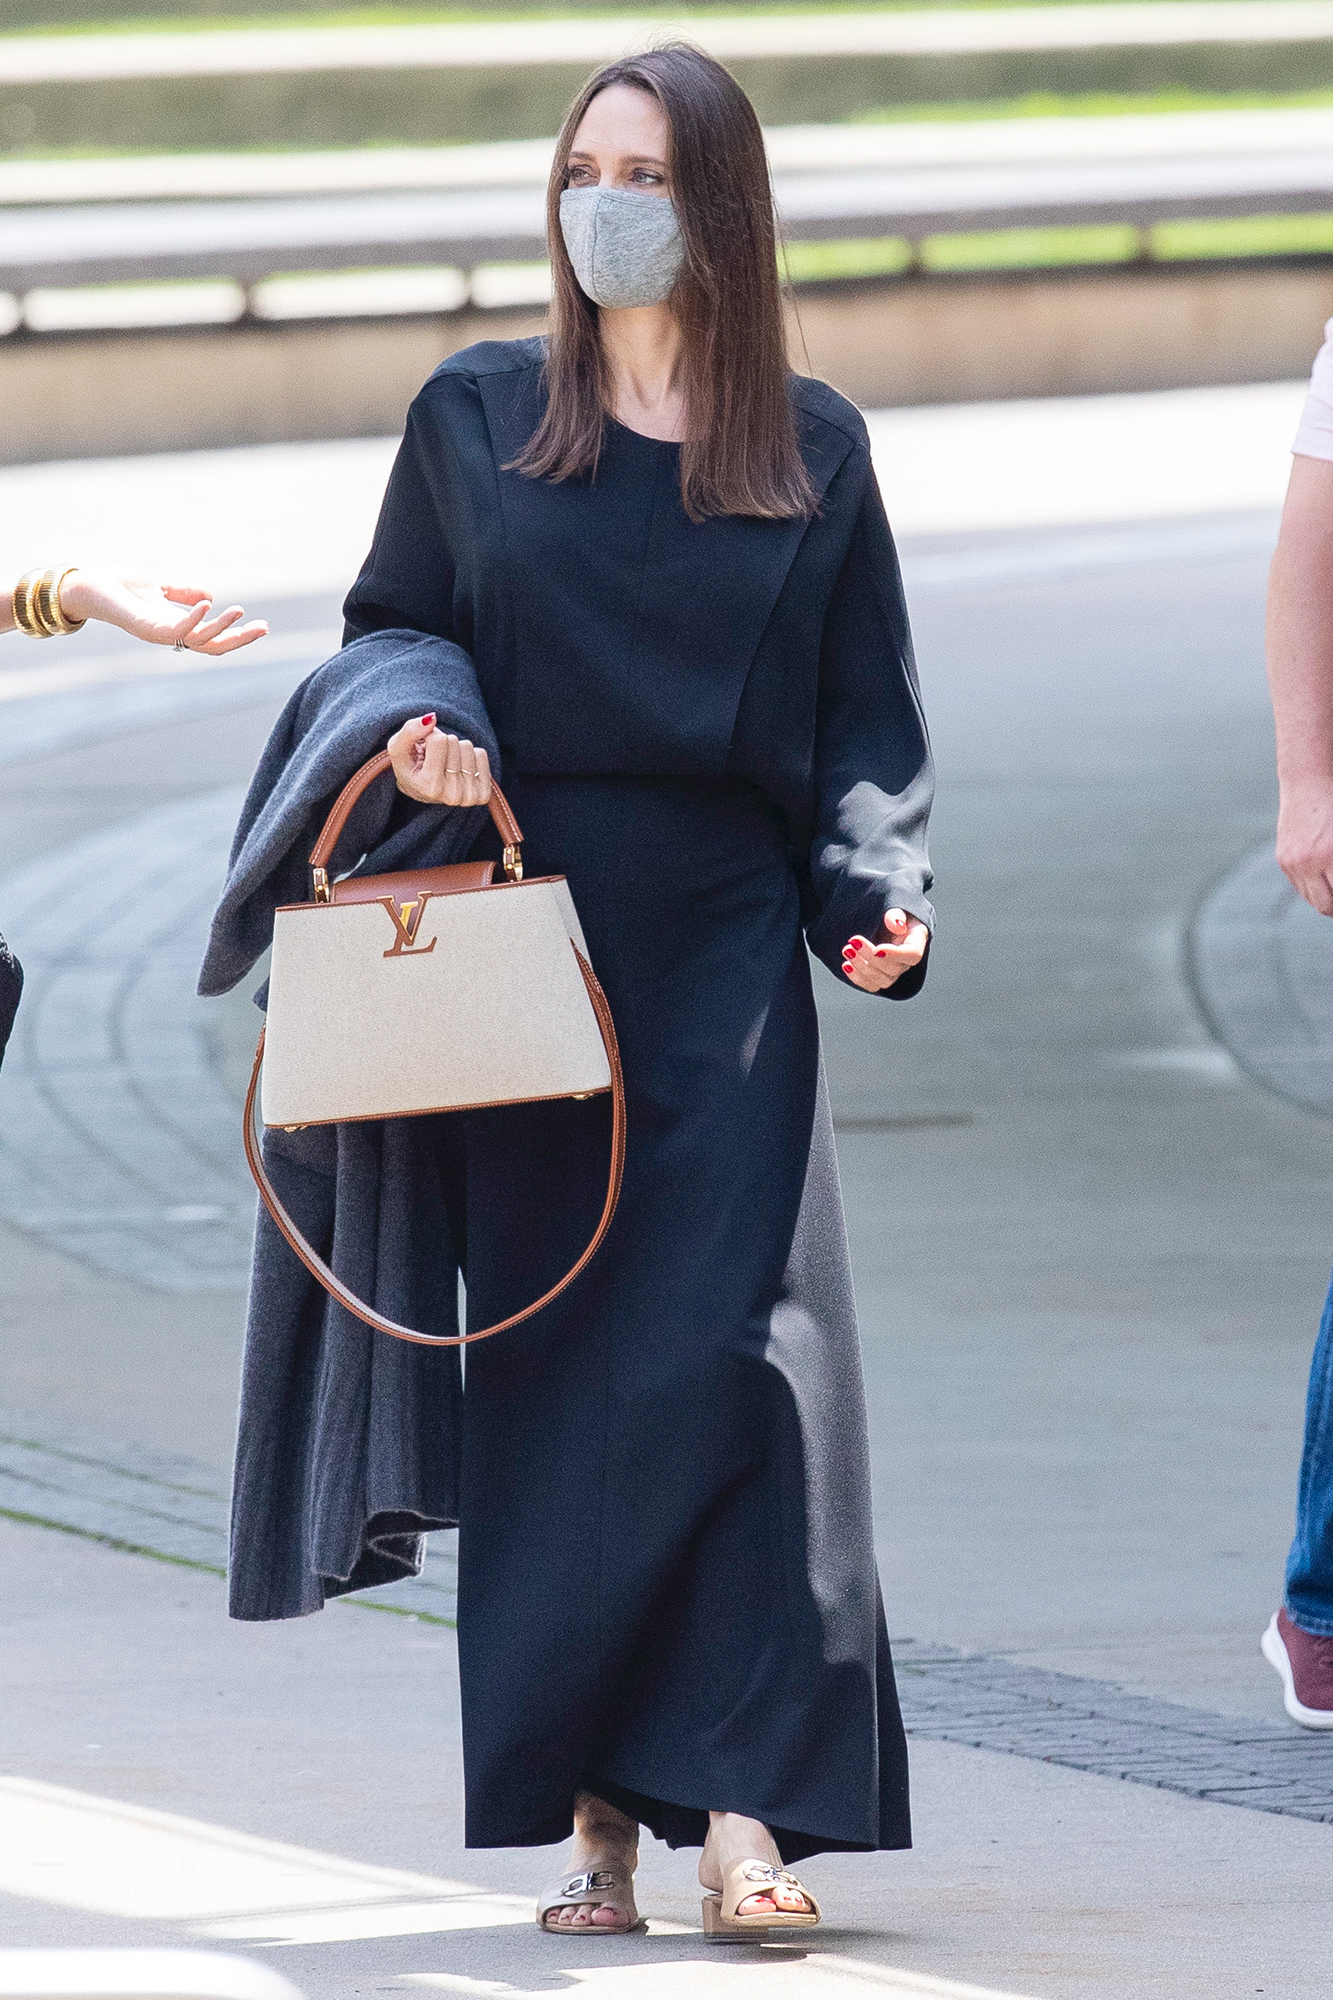 Angelina Jolie Looks Elegant In Long Black Dress As She Gets A Private Tour Of The Brooklyn Museum